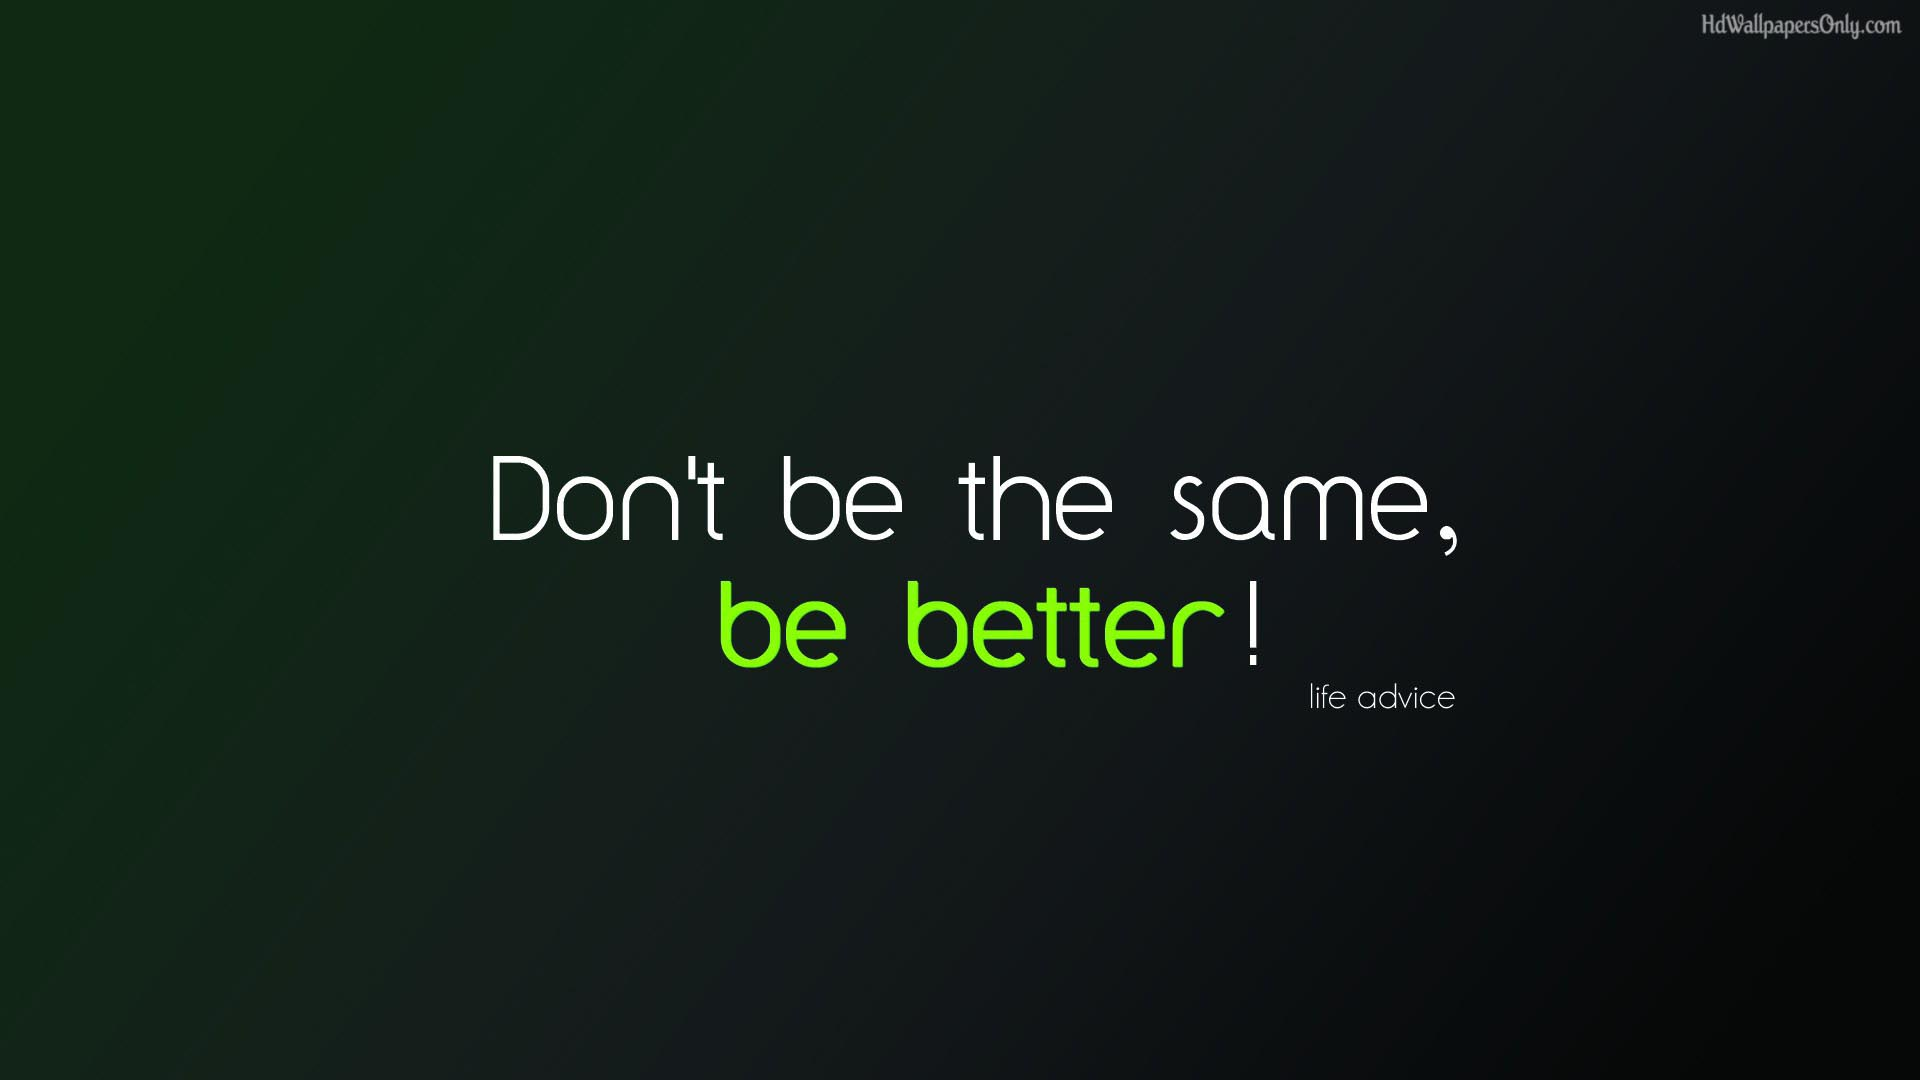 Don-t-be-the-same-be-better-motivational-wallpaper-wp3404744